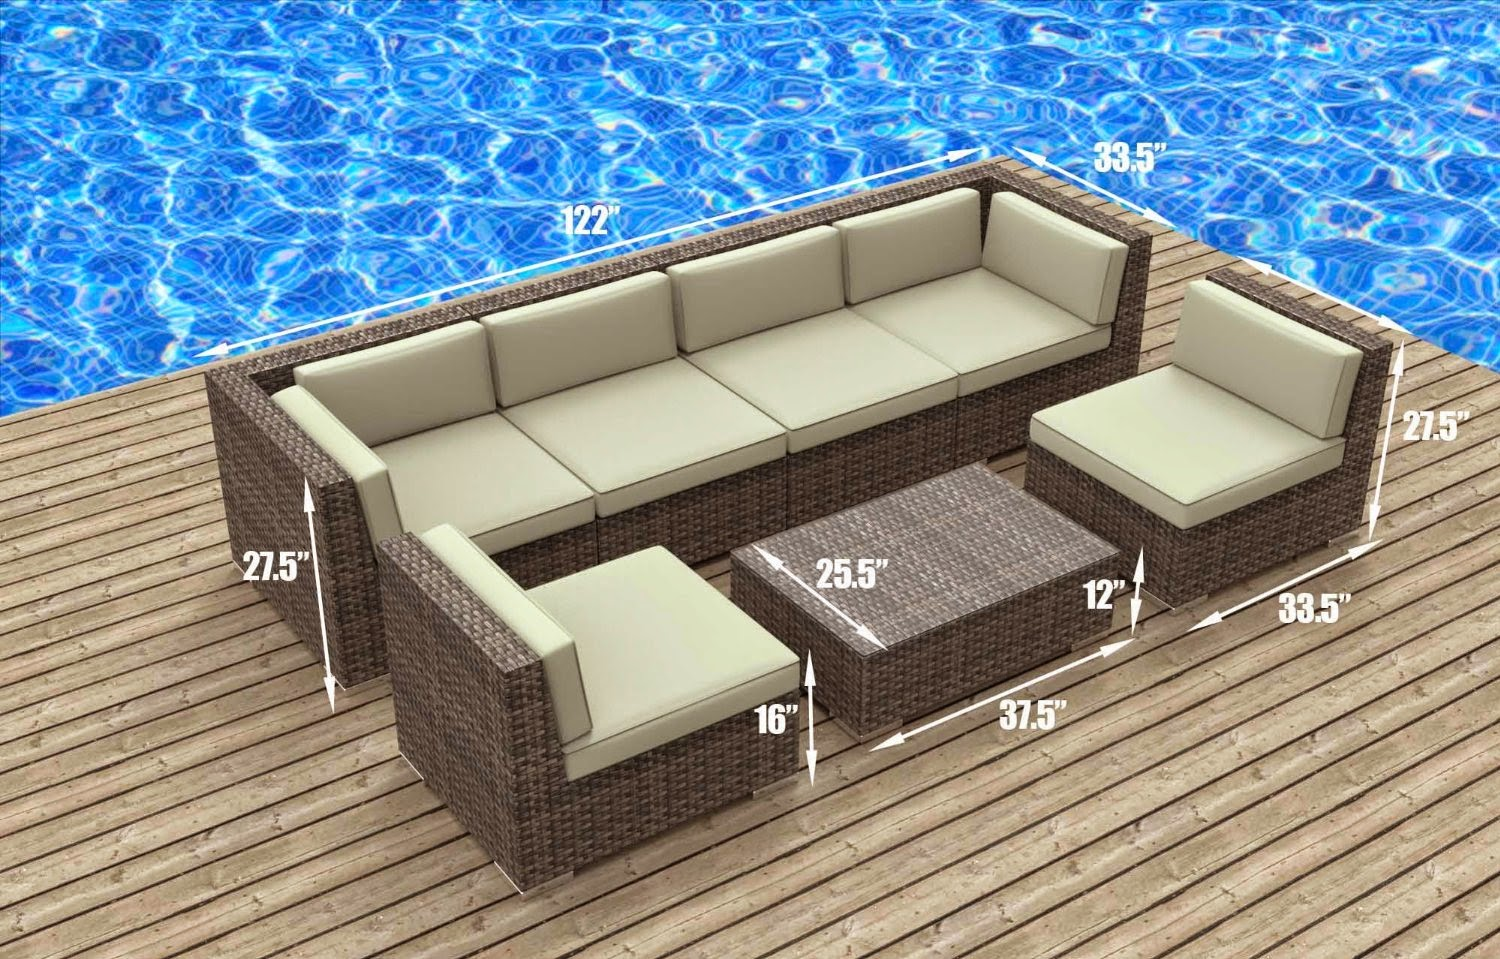 Urban Furnishing Modern Outdoor Backyard Wicker Rattan Patio Furniture Sofa S